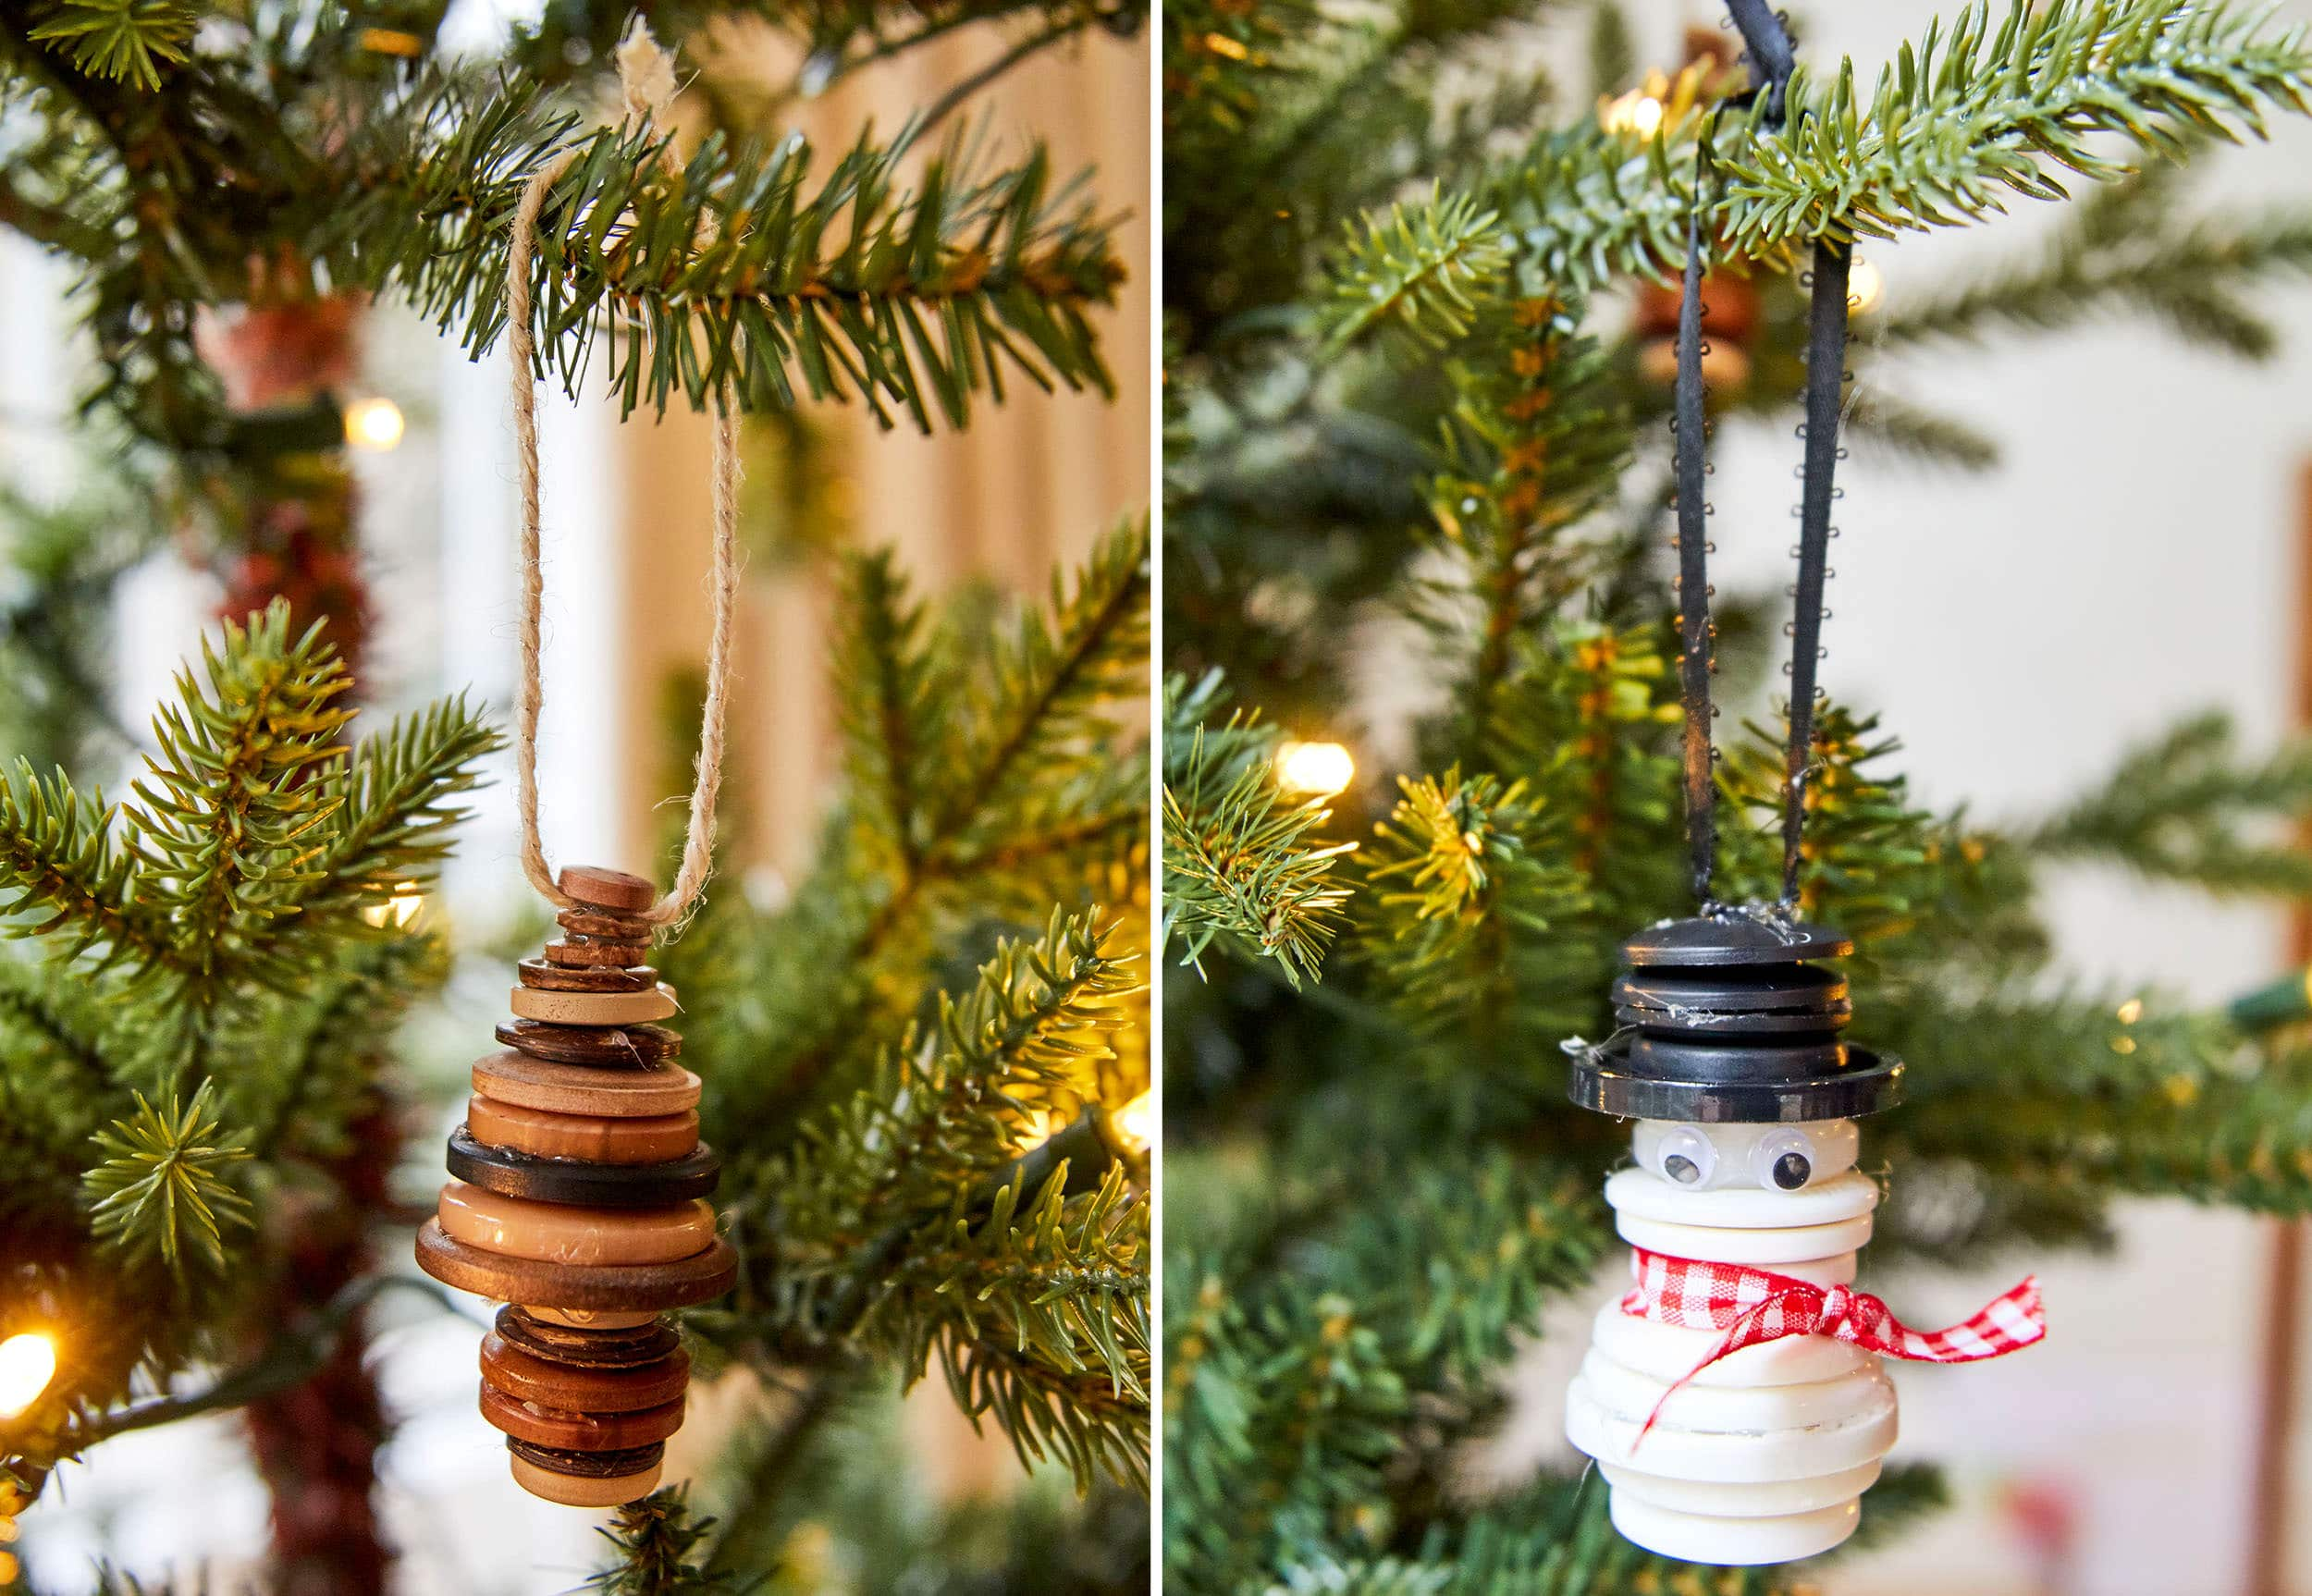 Emily Henderson Diy Ornaments Side By Side 2